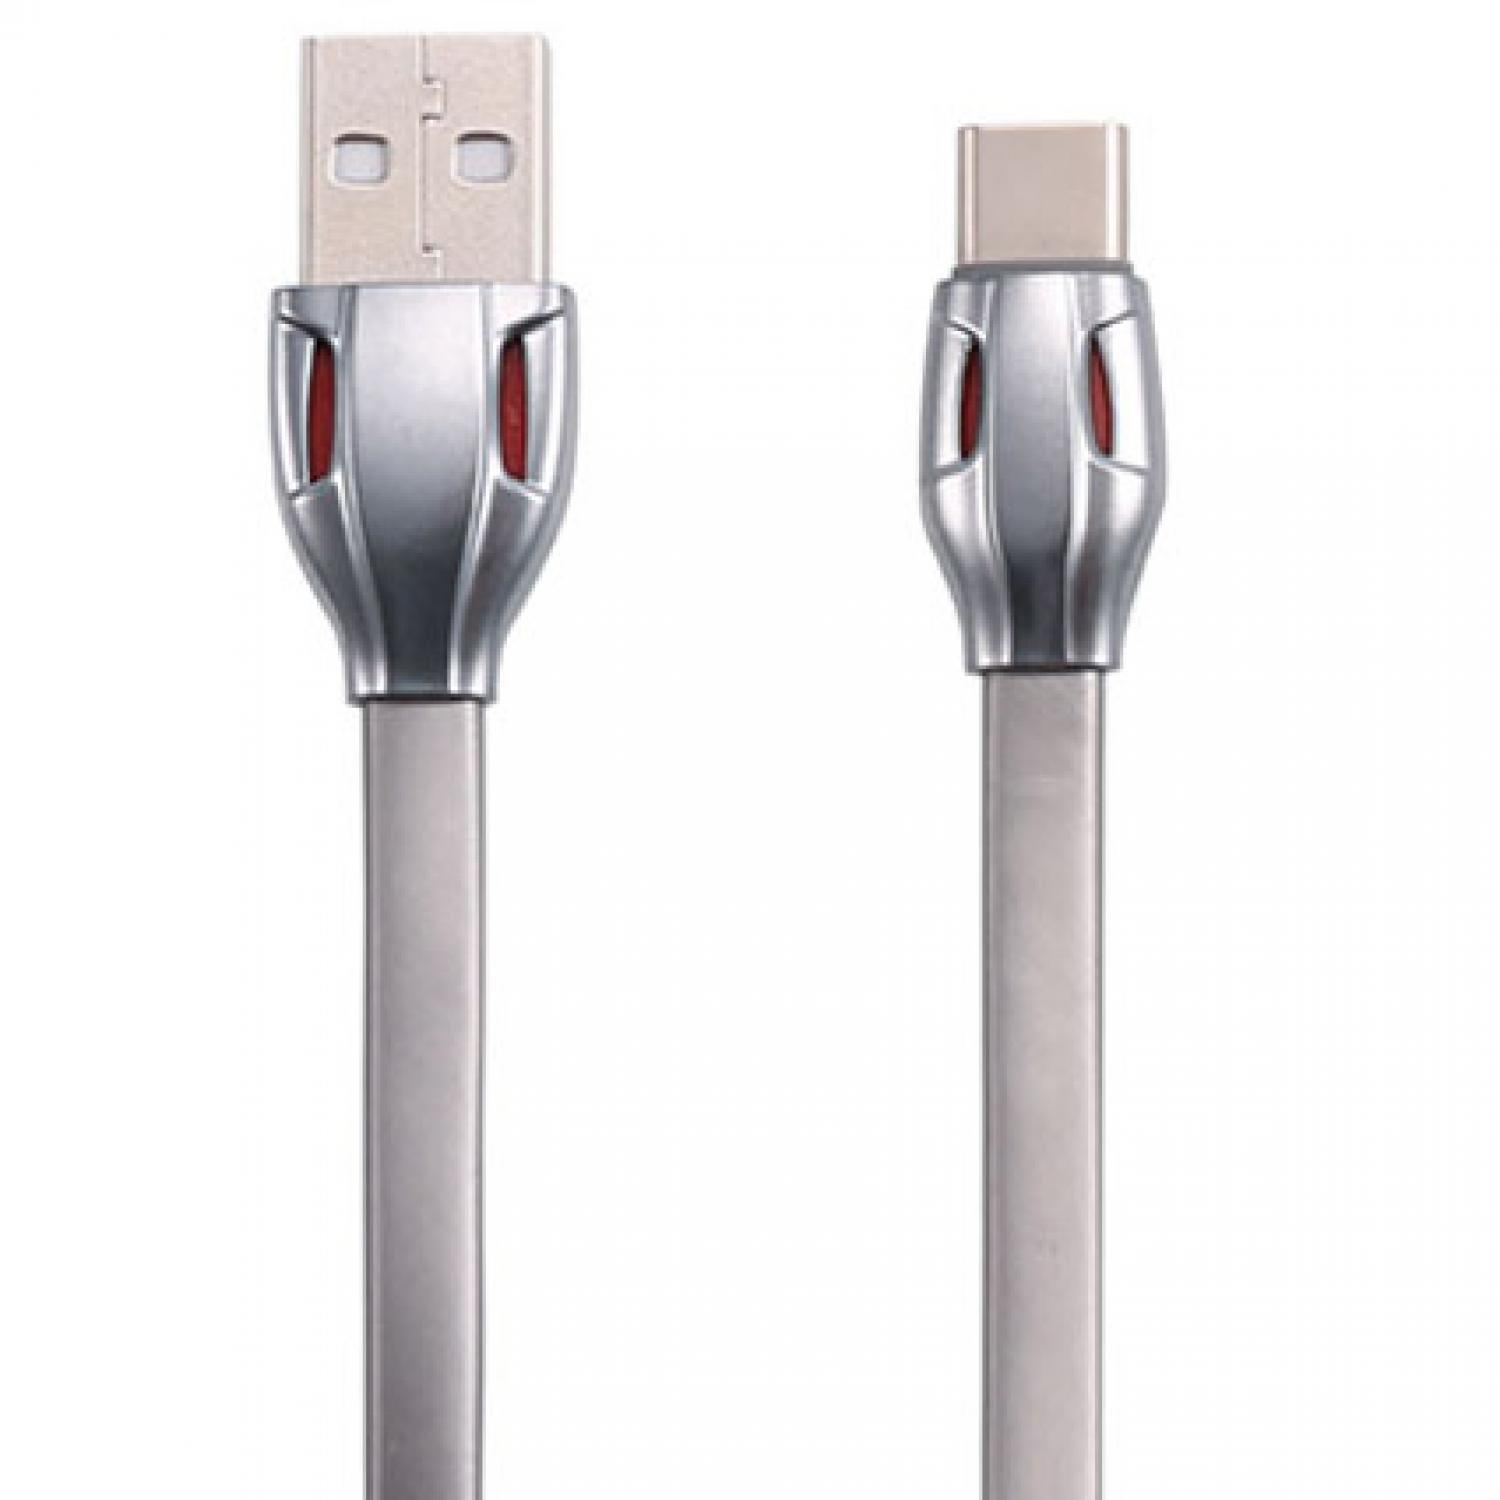 Remax Laser Data Cable for Smartphone/Iphone & Ipad - RC - 035